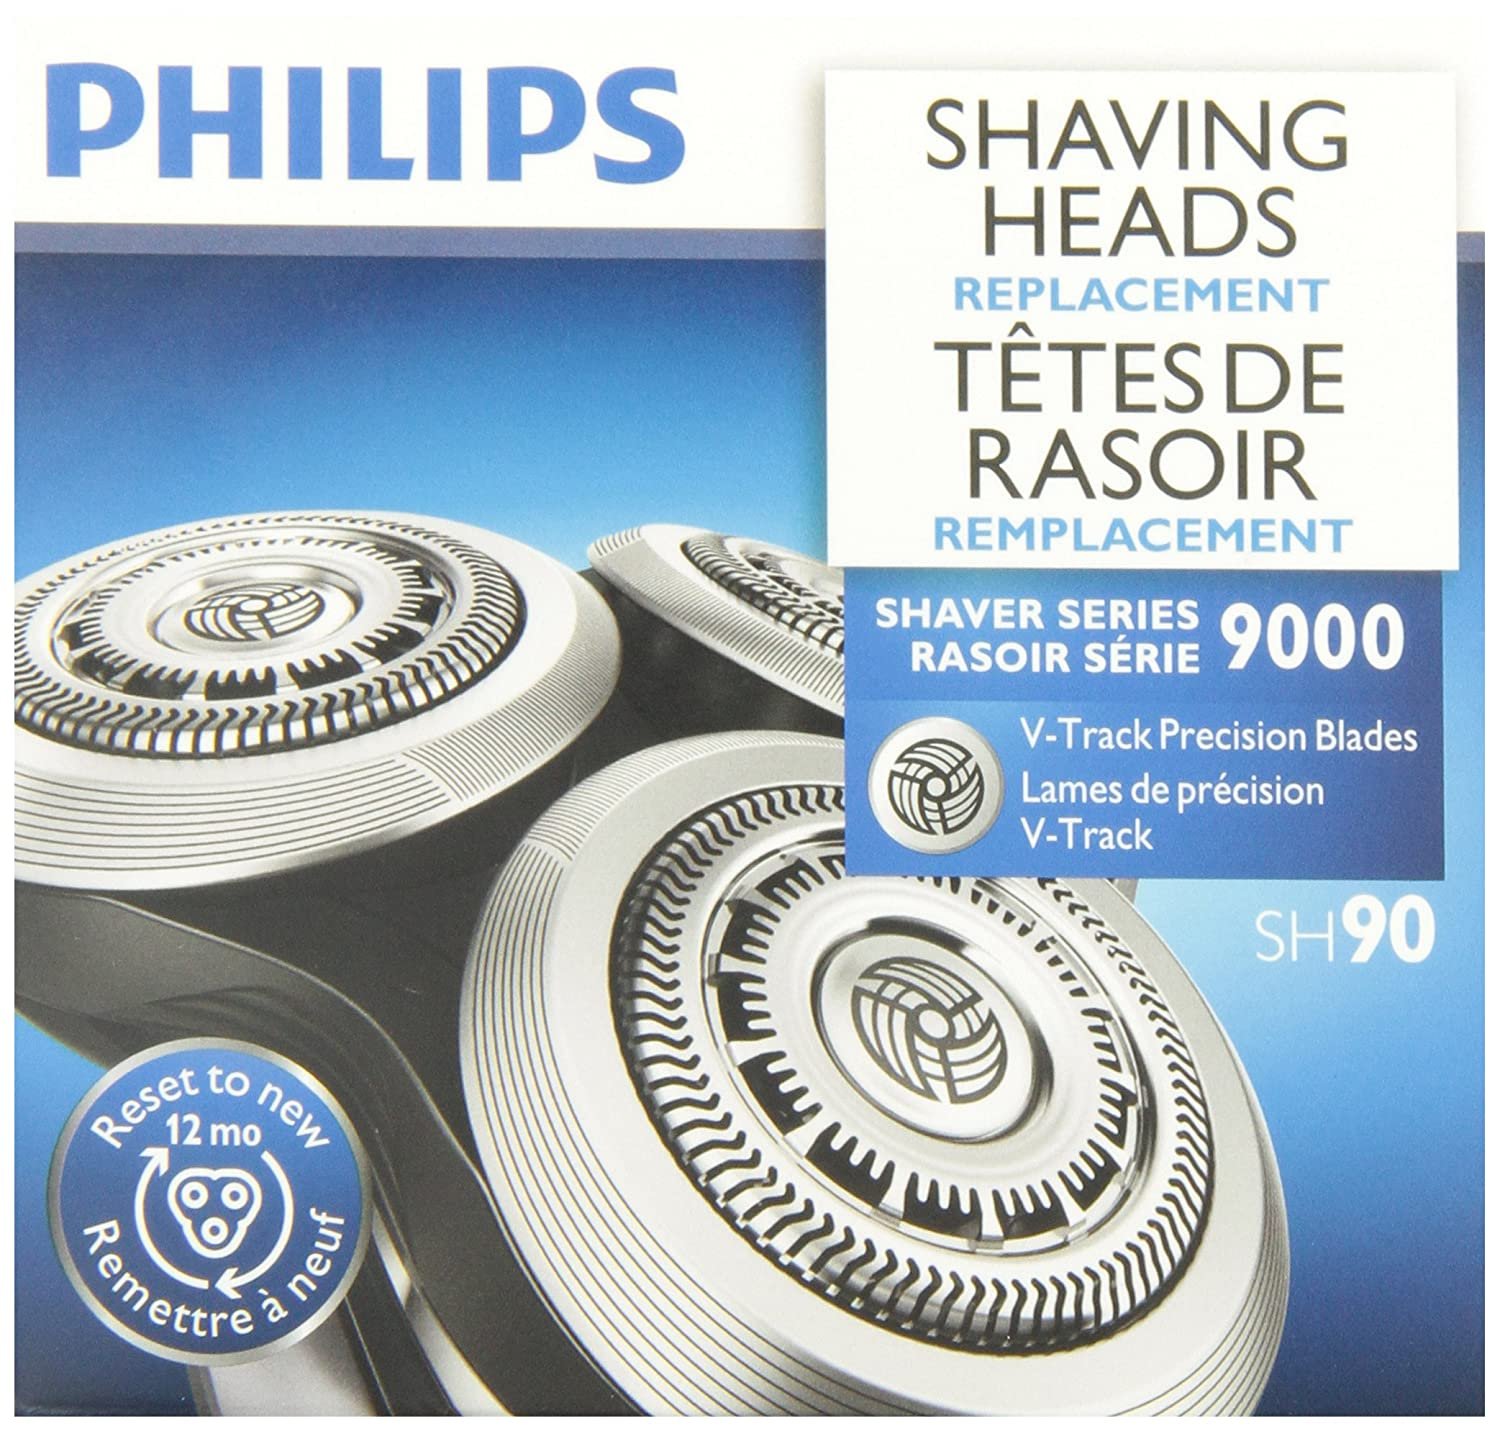 Philips Replacement Shaver Blades for Shaver Series 9000, SH90/53 Philips Canada